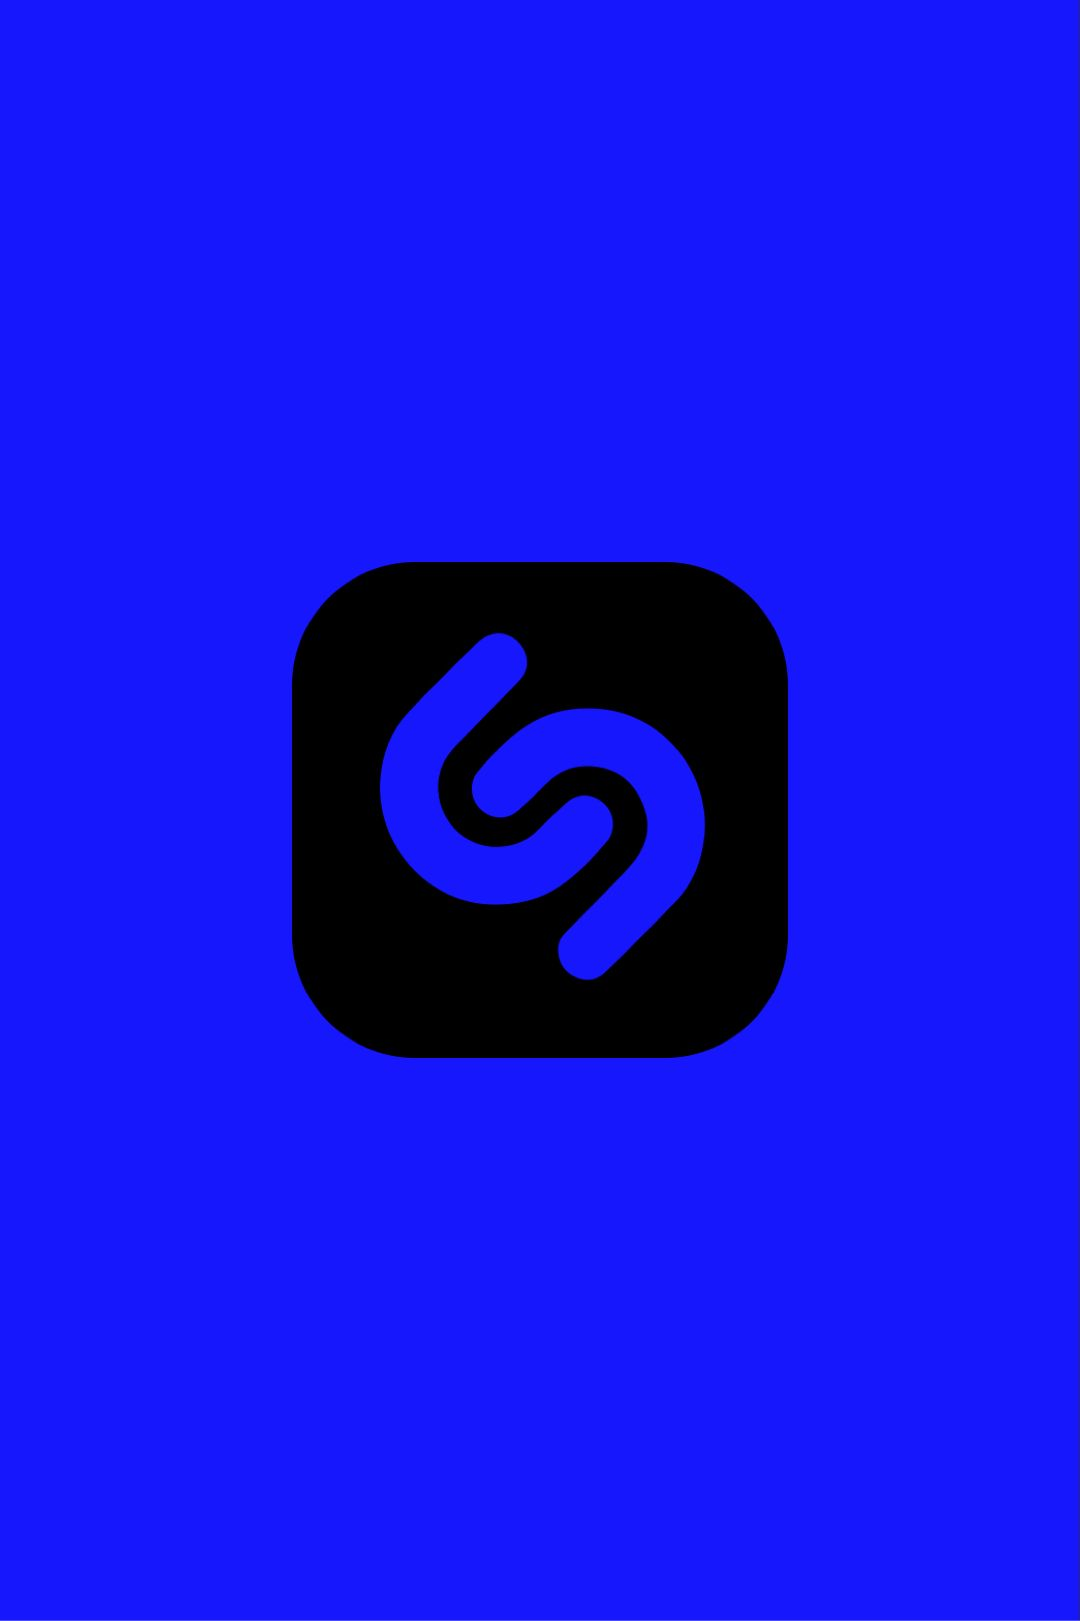 Pin By Flood On Neon Blue In 2020 Neon Blue App Icon Icon